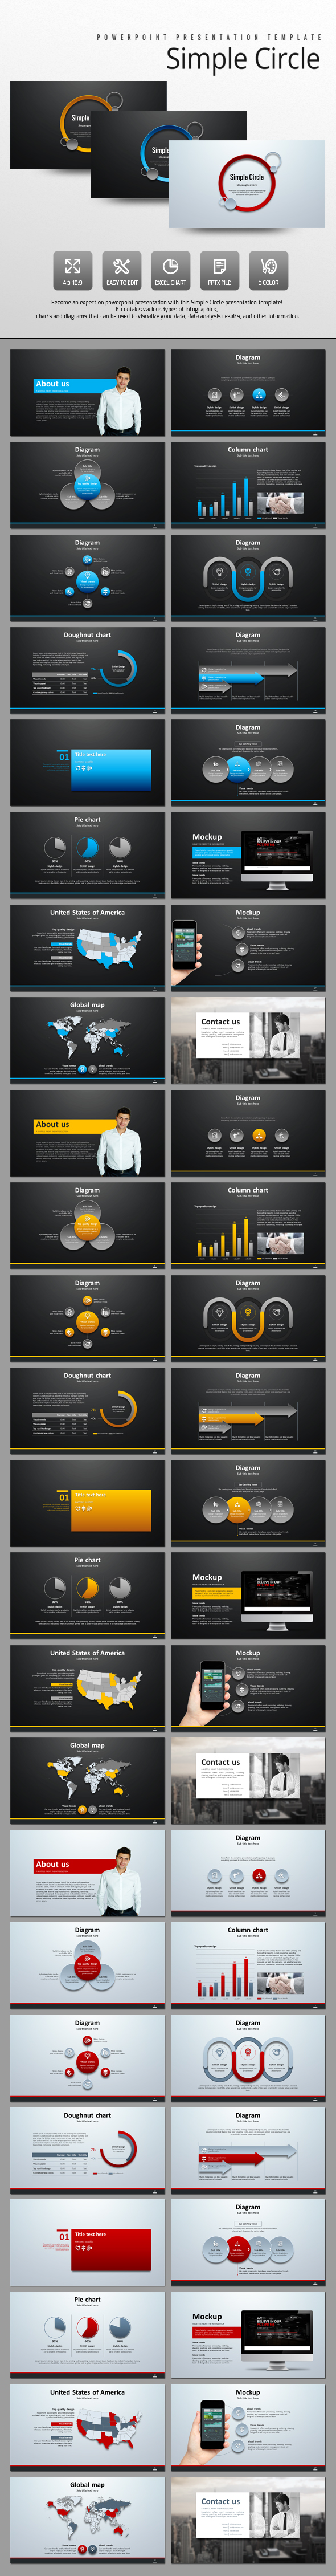 Simple Circle - PowerPoint Templates Presentation Templates